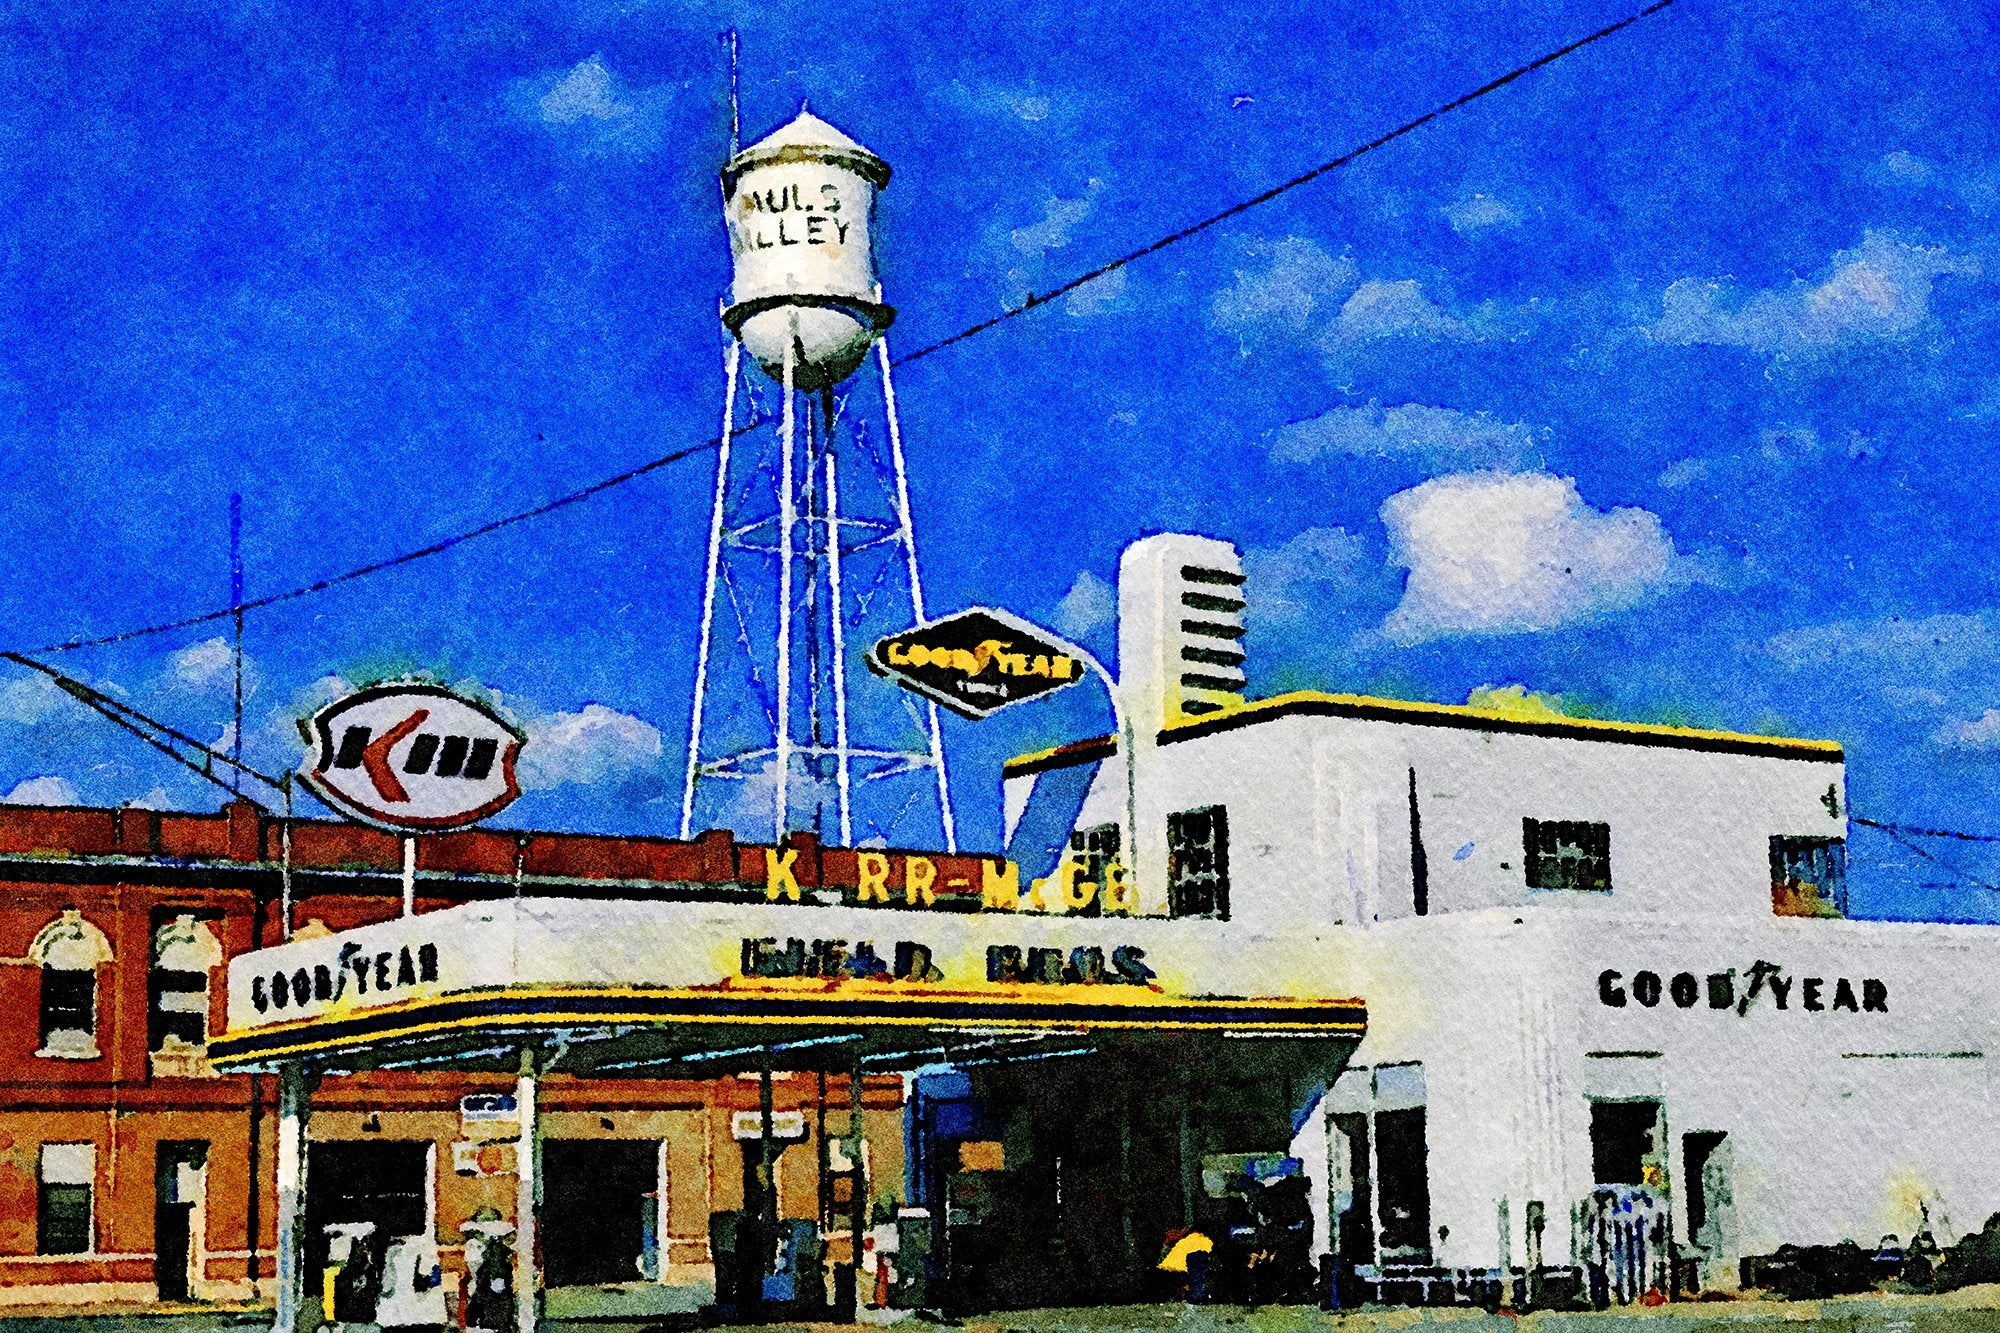 Field Brothers Service Station, 300 West Paul, Paul's Valley, Oklahoma, Reworked, Series 1